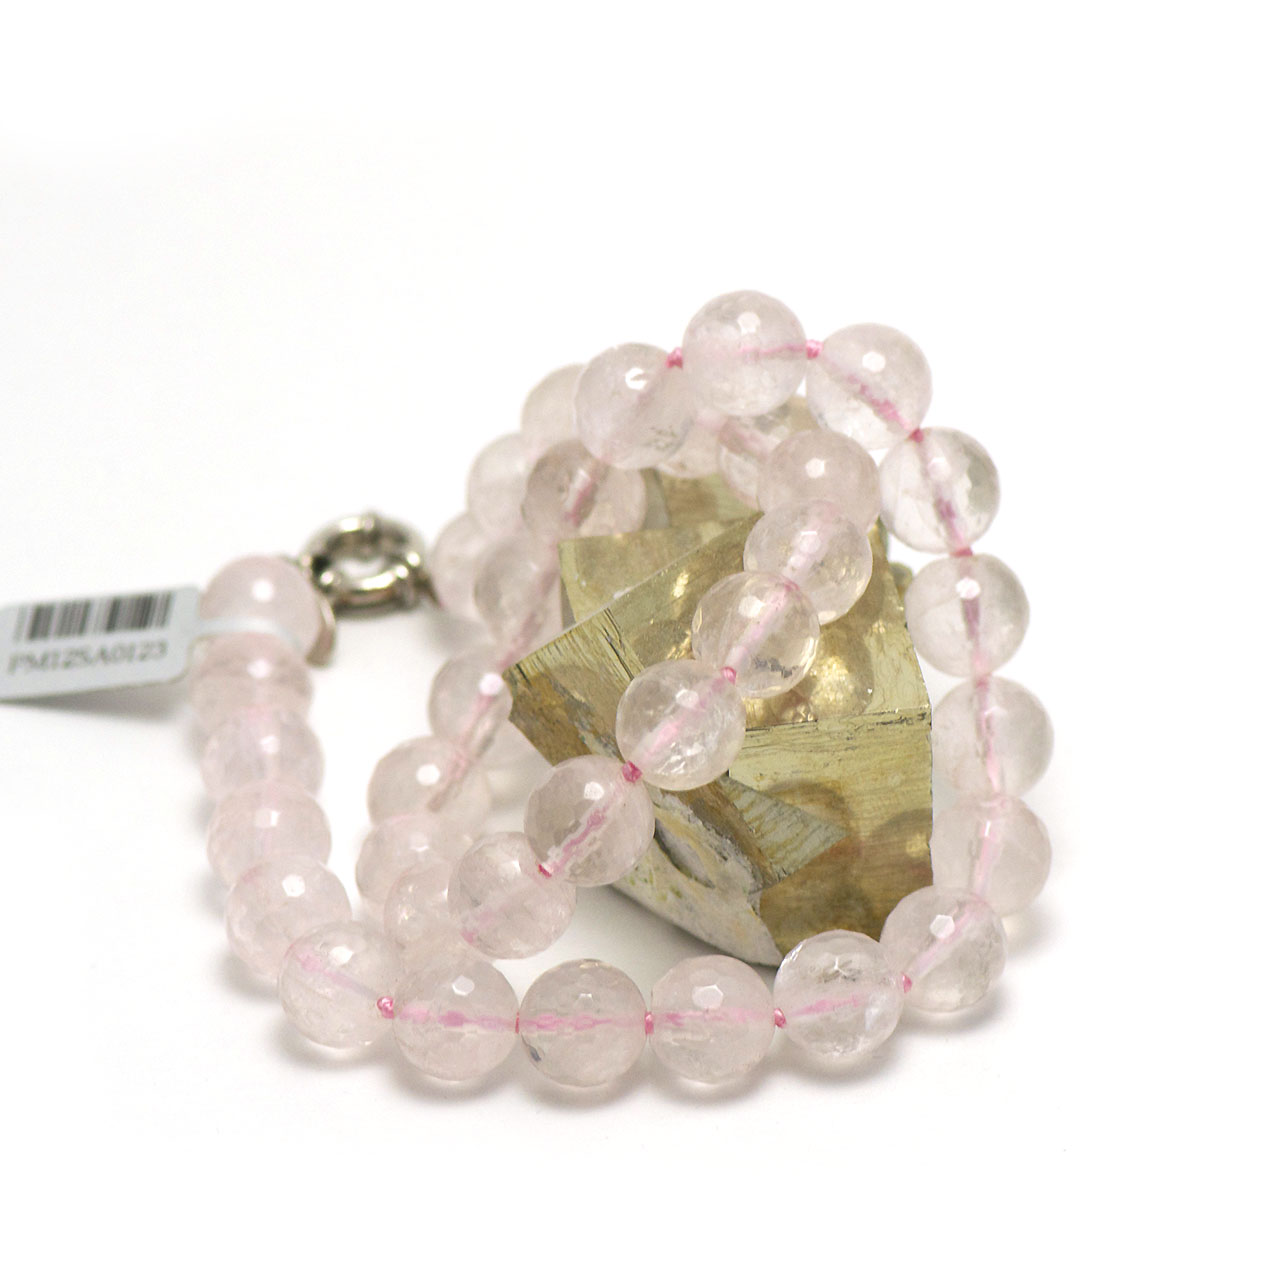 Collier quartz rose  perle ronde facettée 12 mm